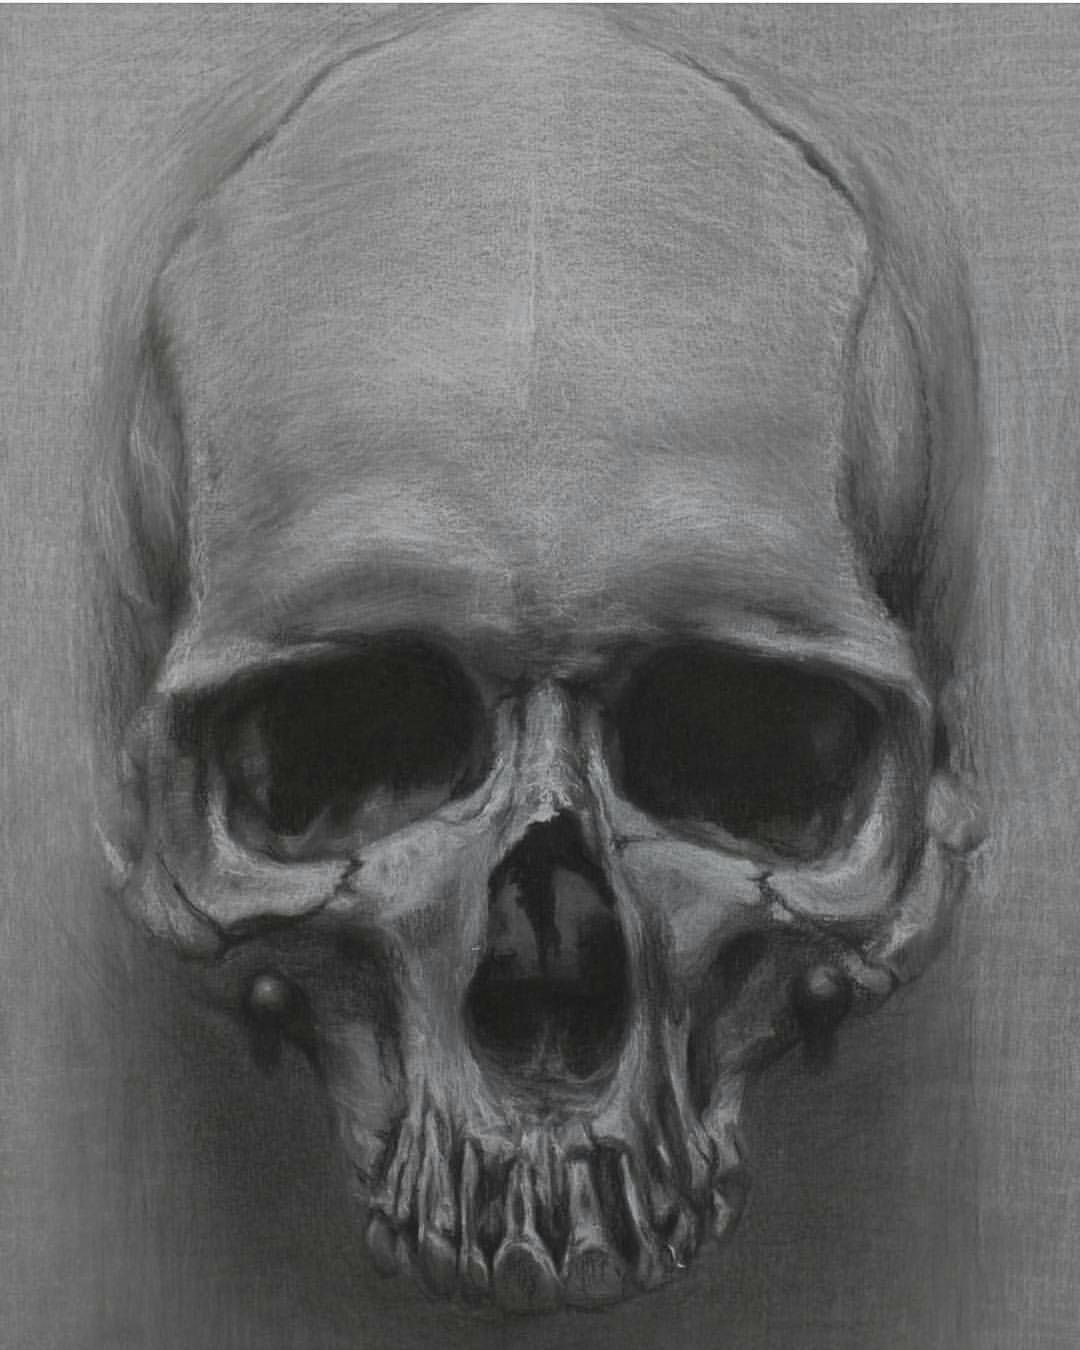 Pin by Rafael Ortiz on SKULLS in 2019 | Skull artwork ...